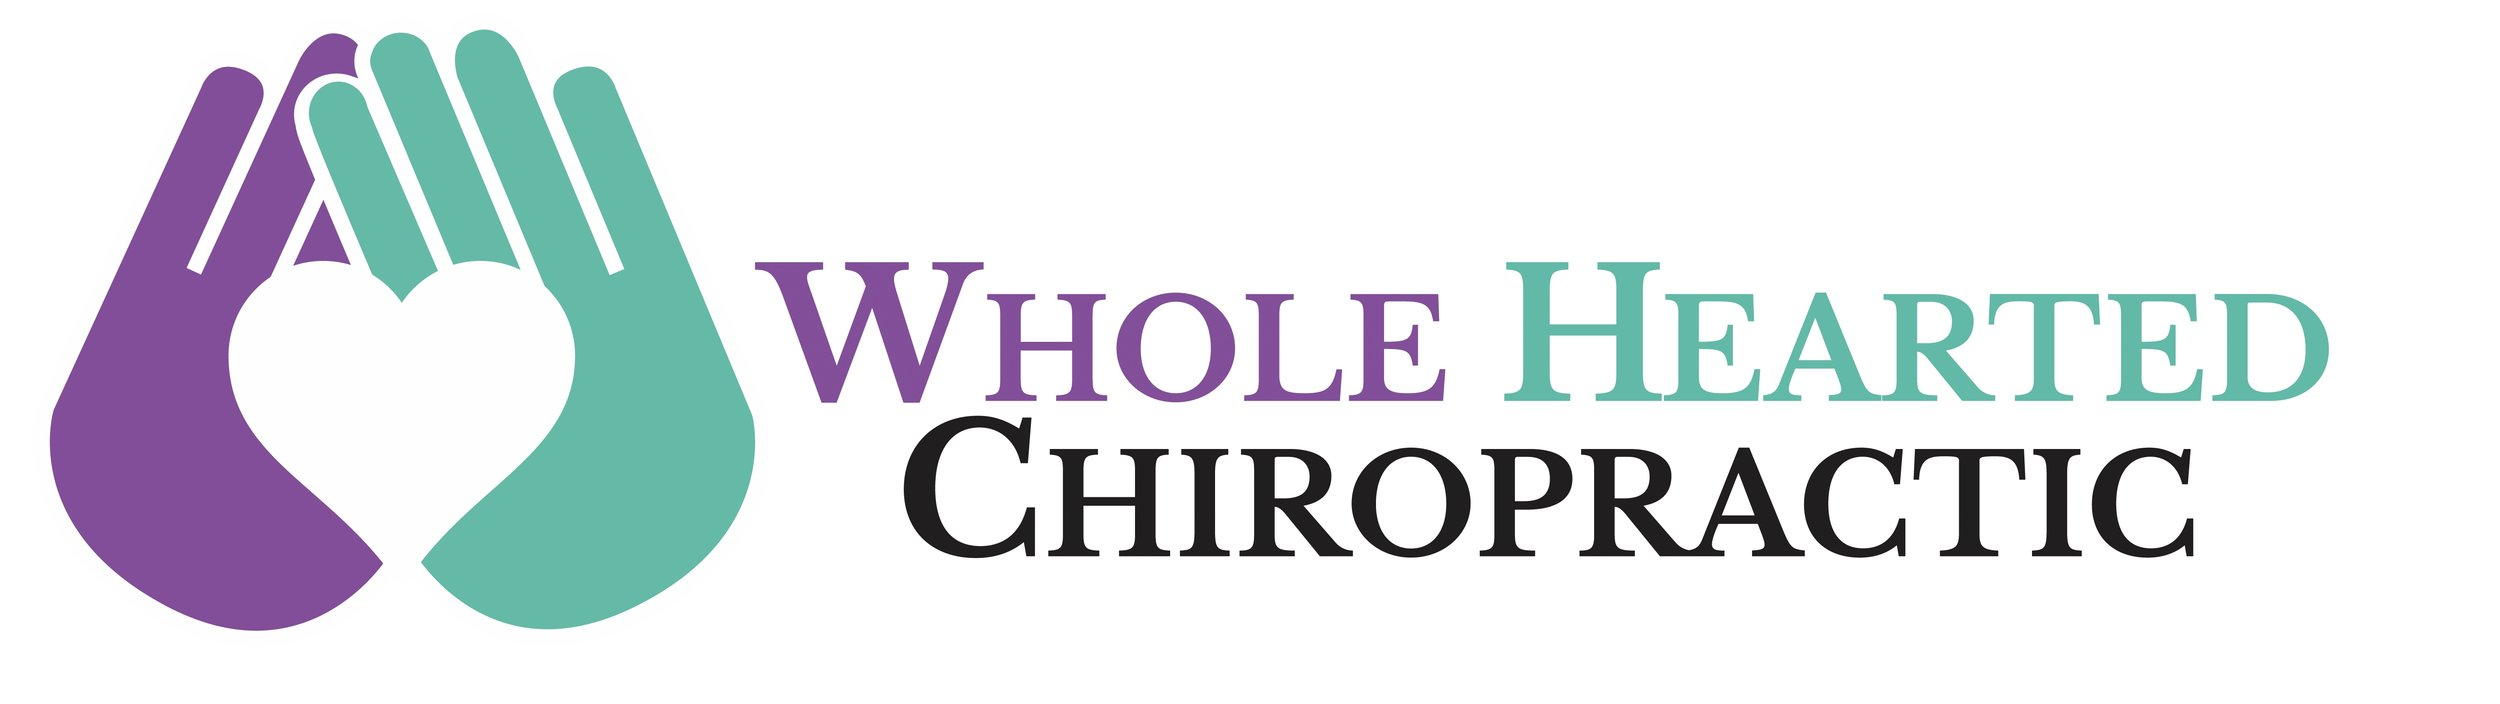 Whole Hearted Chiropractic